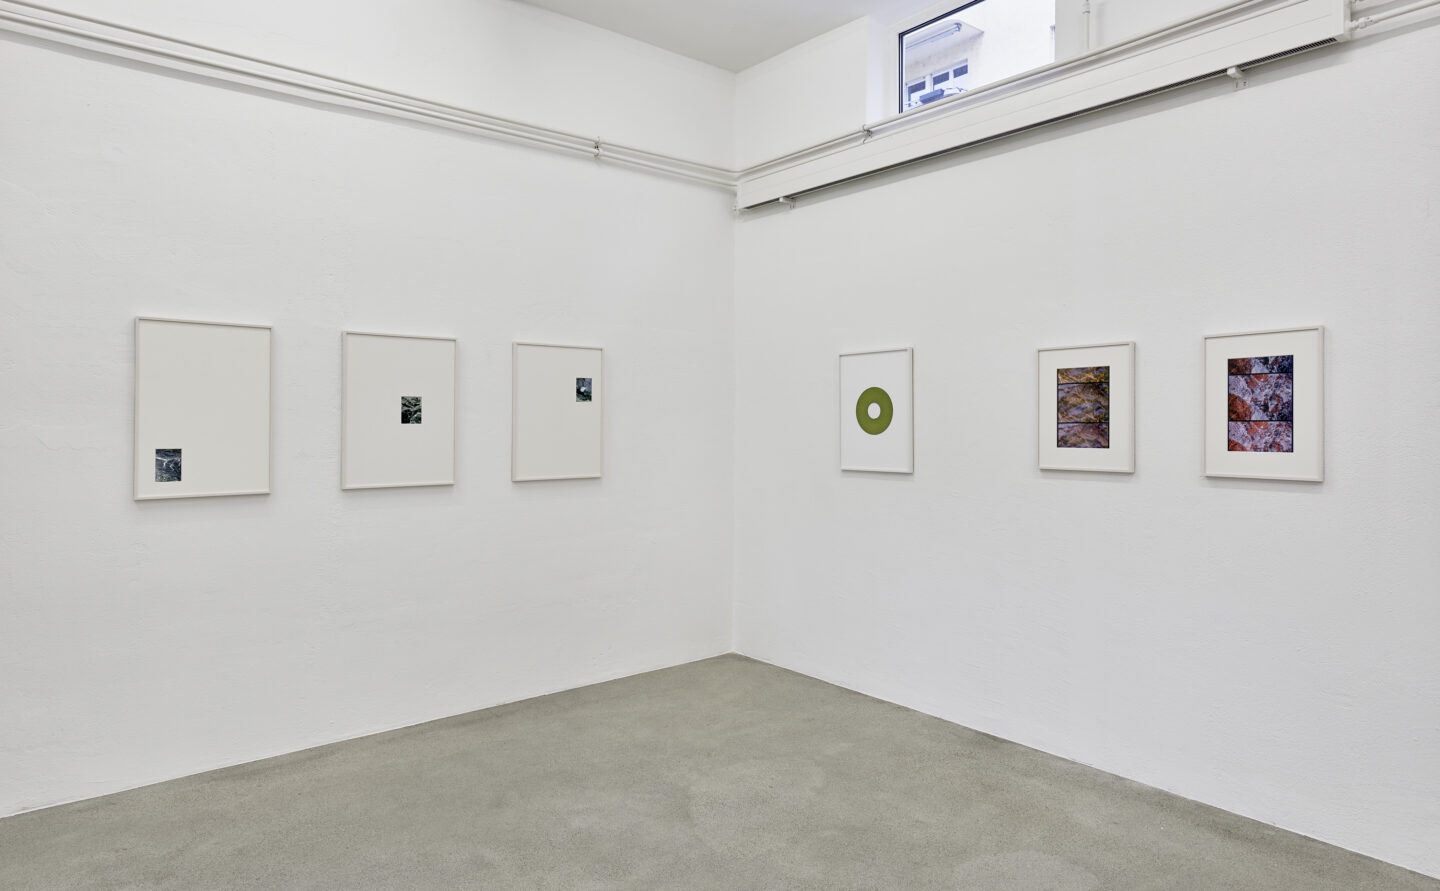 Exhibition View Groupshow «La metamorphose de l'art imprime; view on Philippe Decrauzat, A frame in a frame in a frame (Replica), 2019; Positive copy (Replica), 2019 and Different time (Replica), 2019» at VFO, Zurich, 2019 / Photo: Bernhard Strauss / Courtesy: the artist and VFO, Zurich